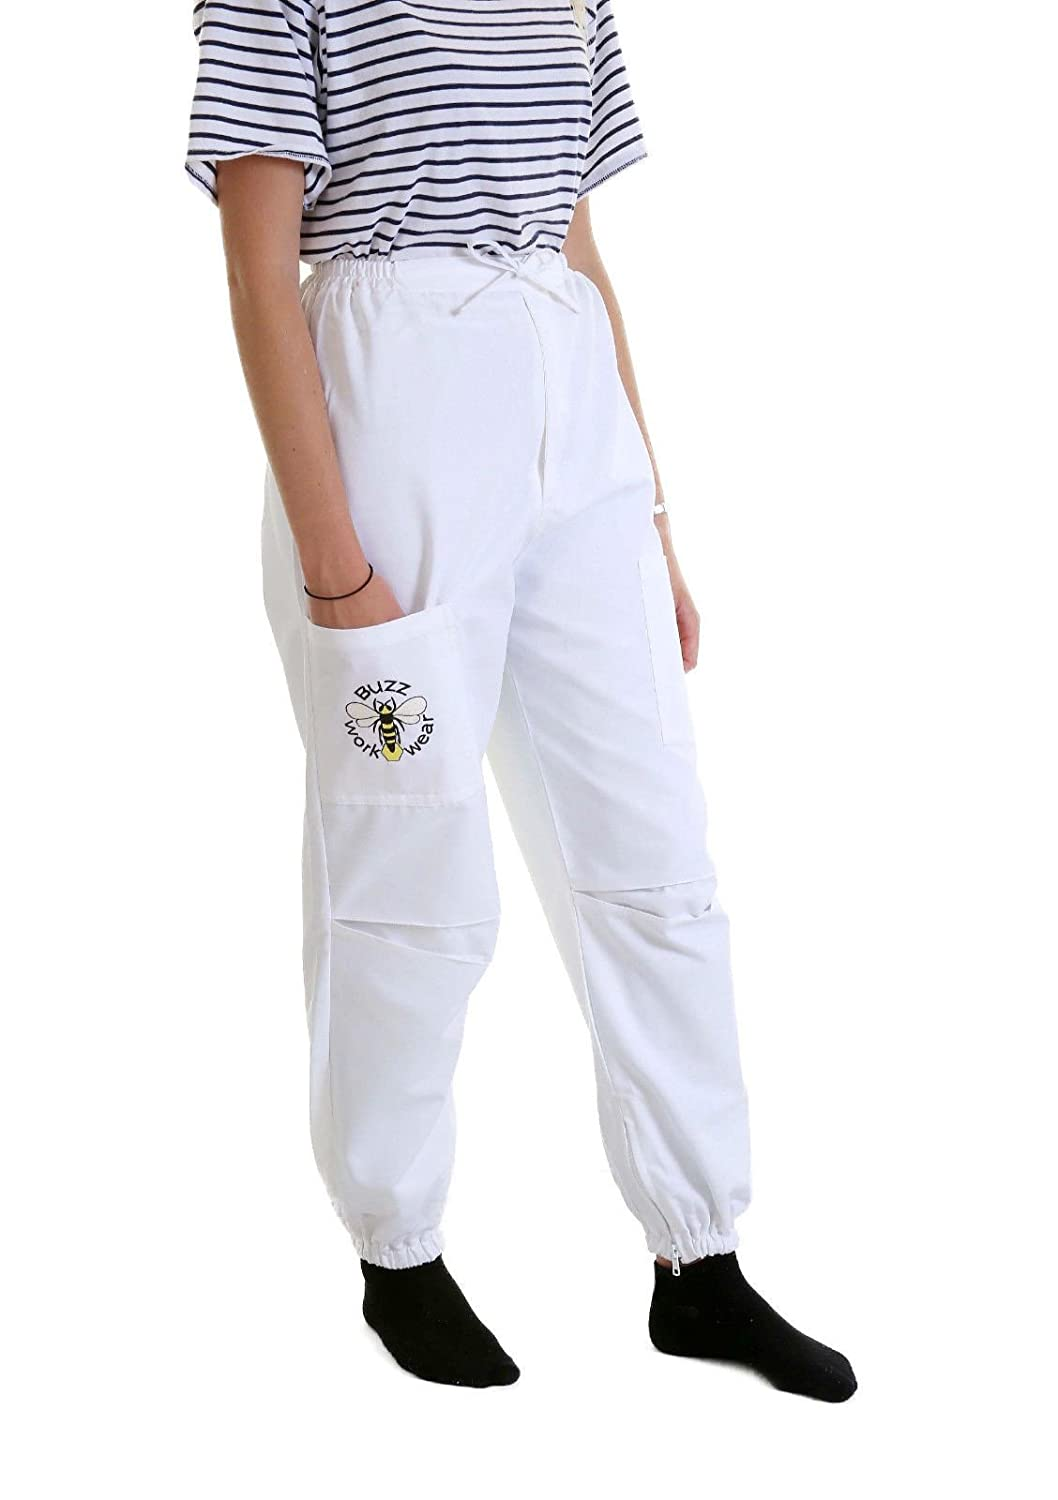 Beekeepers BUZZ Bee Trousers : EXTRA EXTRA LARGE Simonthebeekeeper